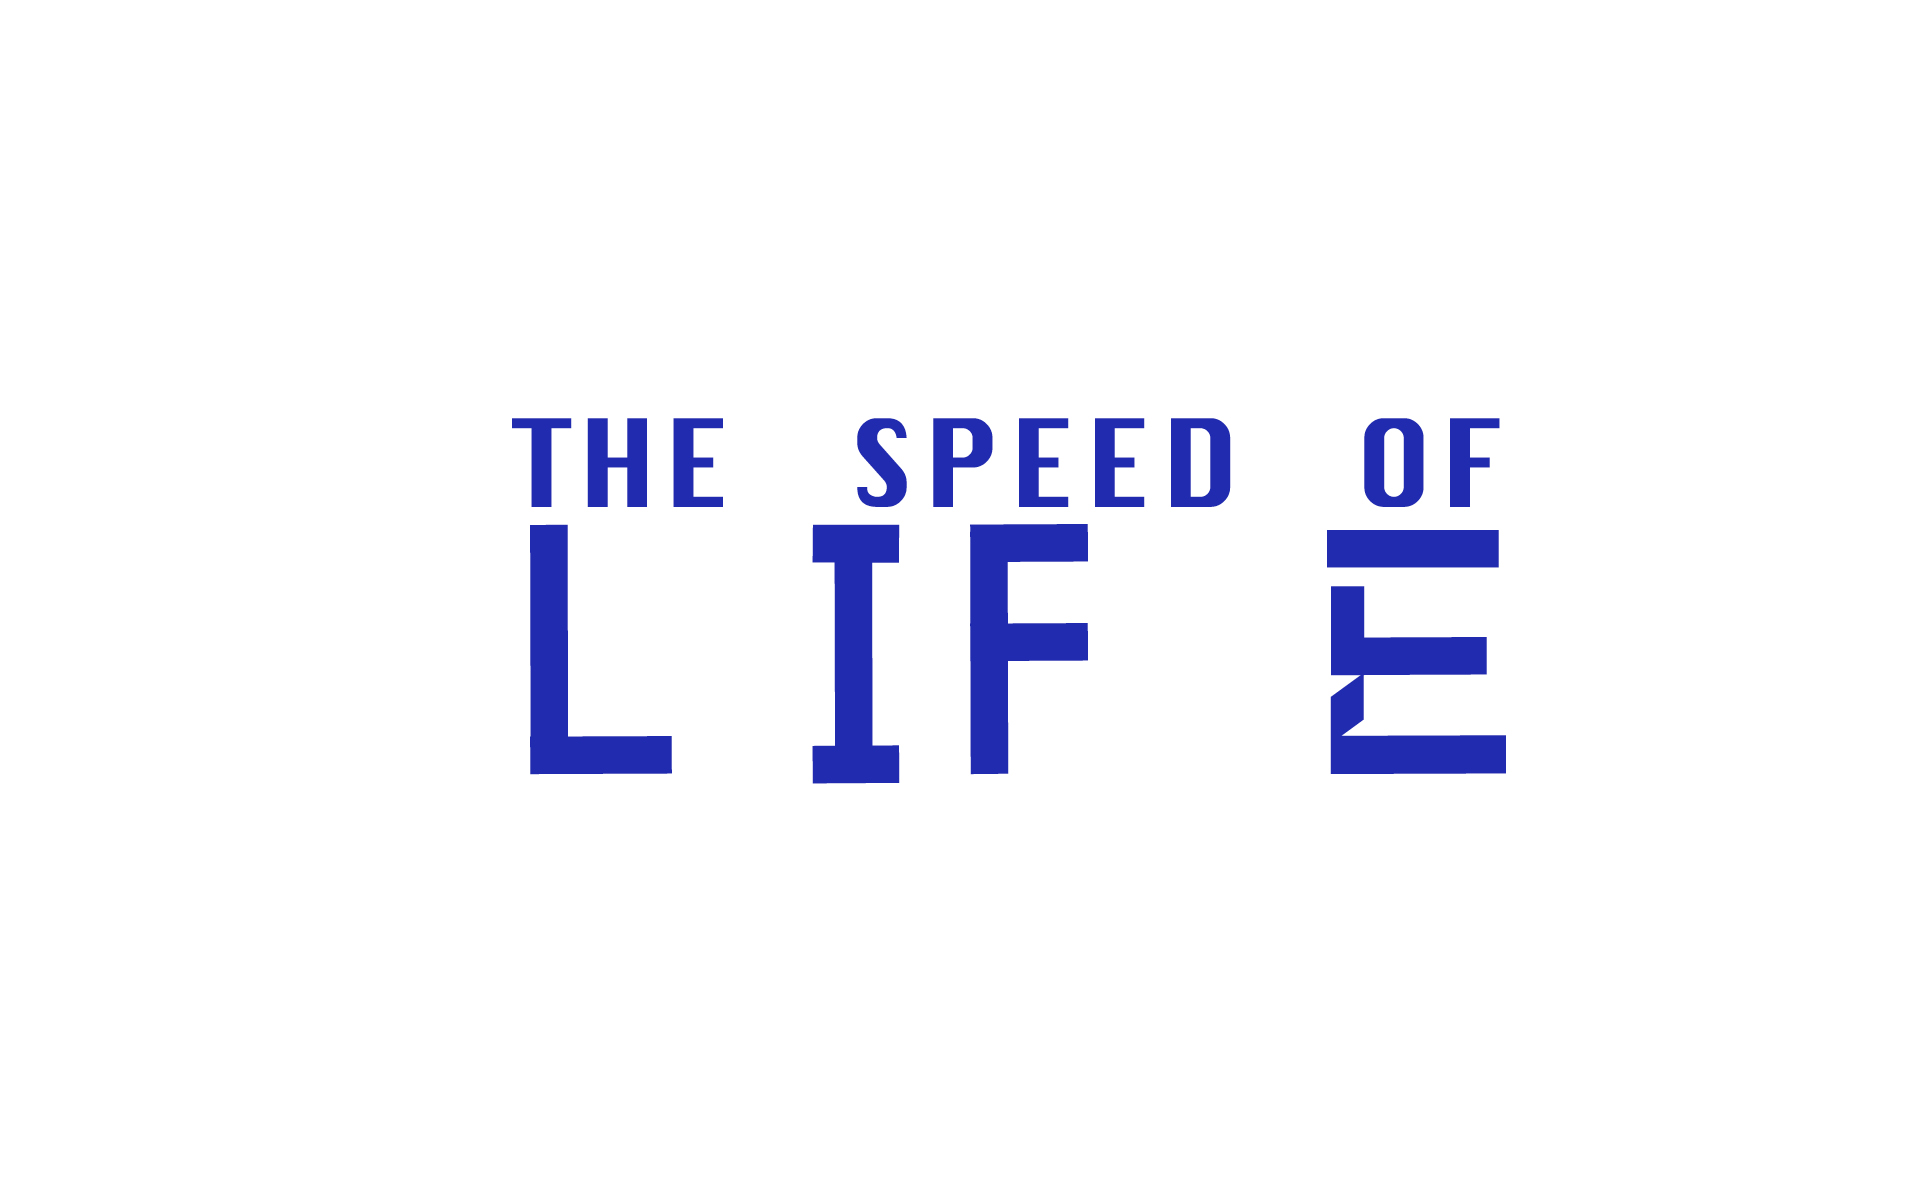 the speed of life, in english